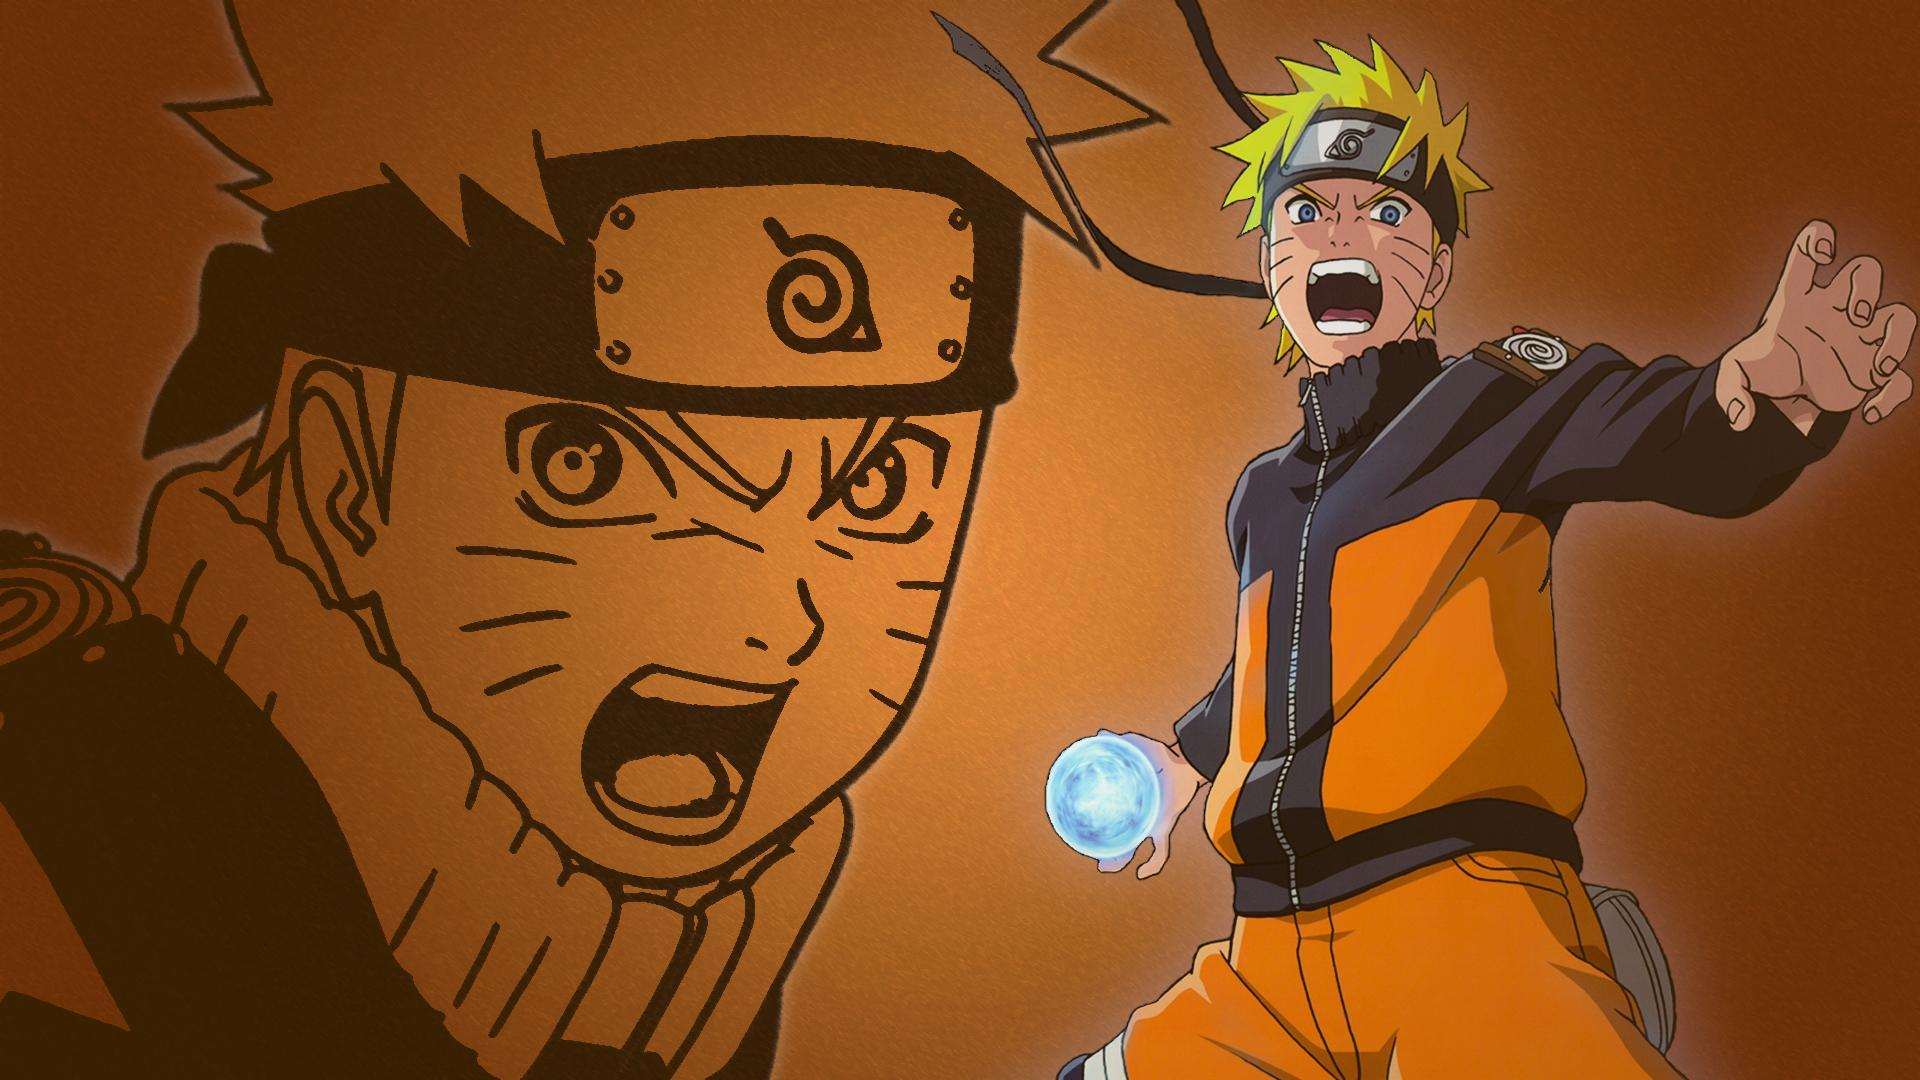 Anime Naruto HD 8k Wallpapers - Wallpaper Cave